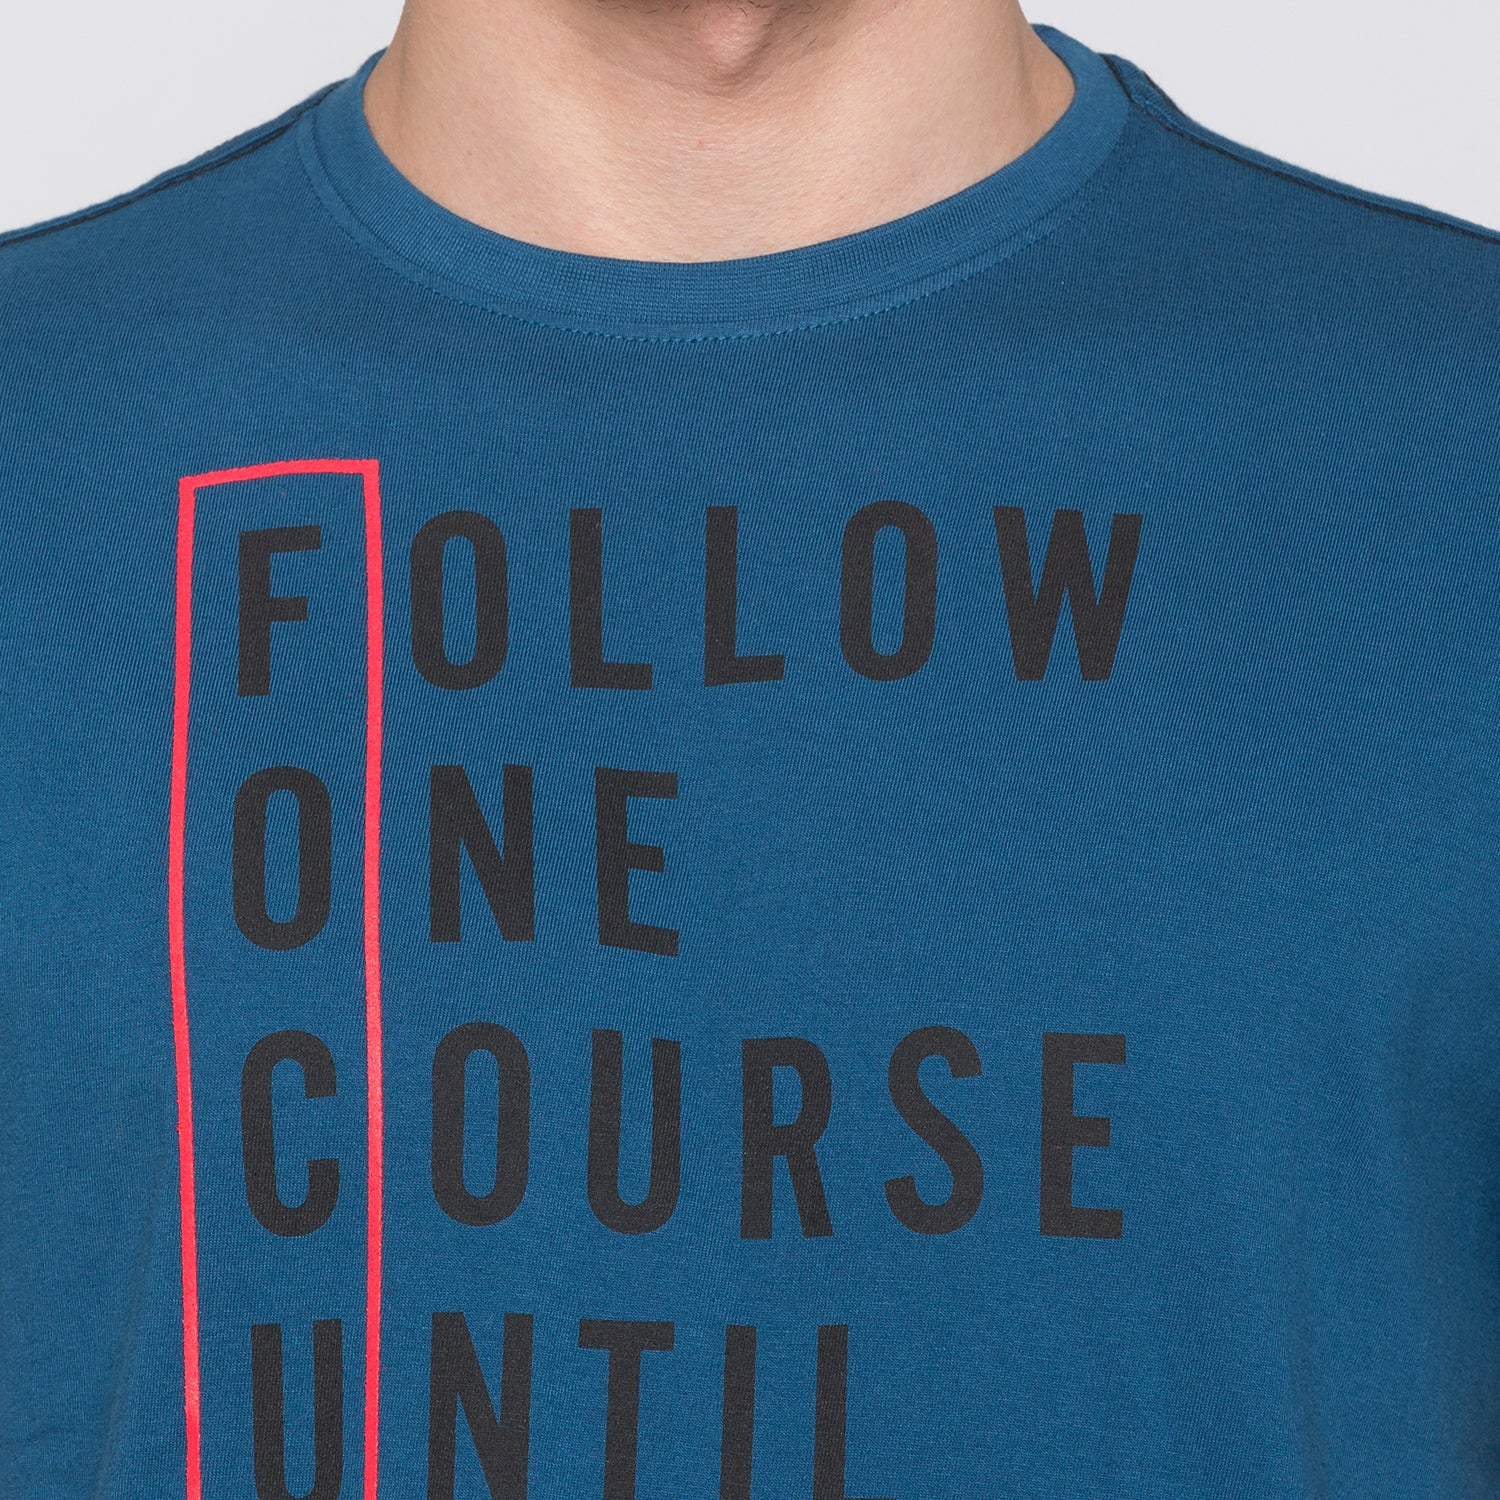 Globus Blue Typography T-Shirt5